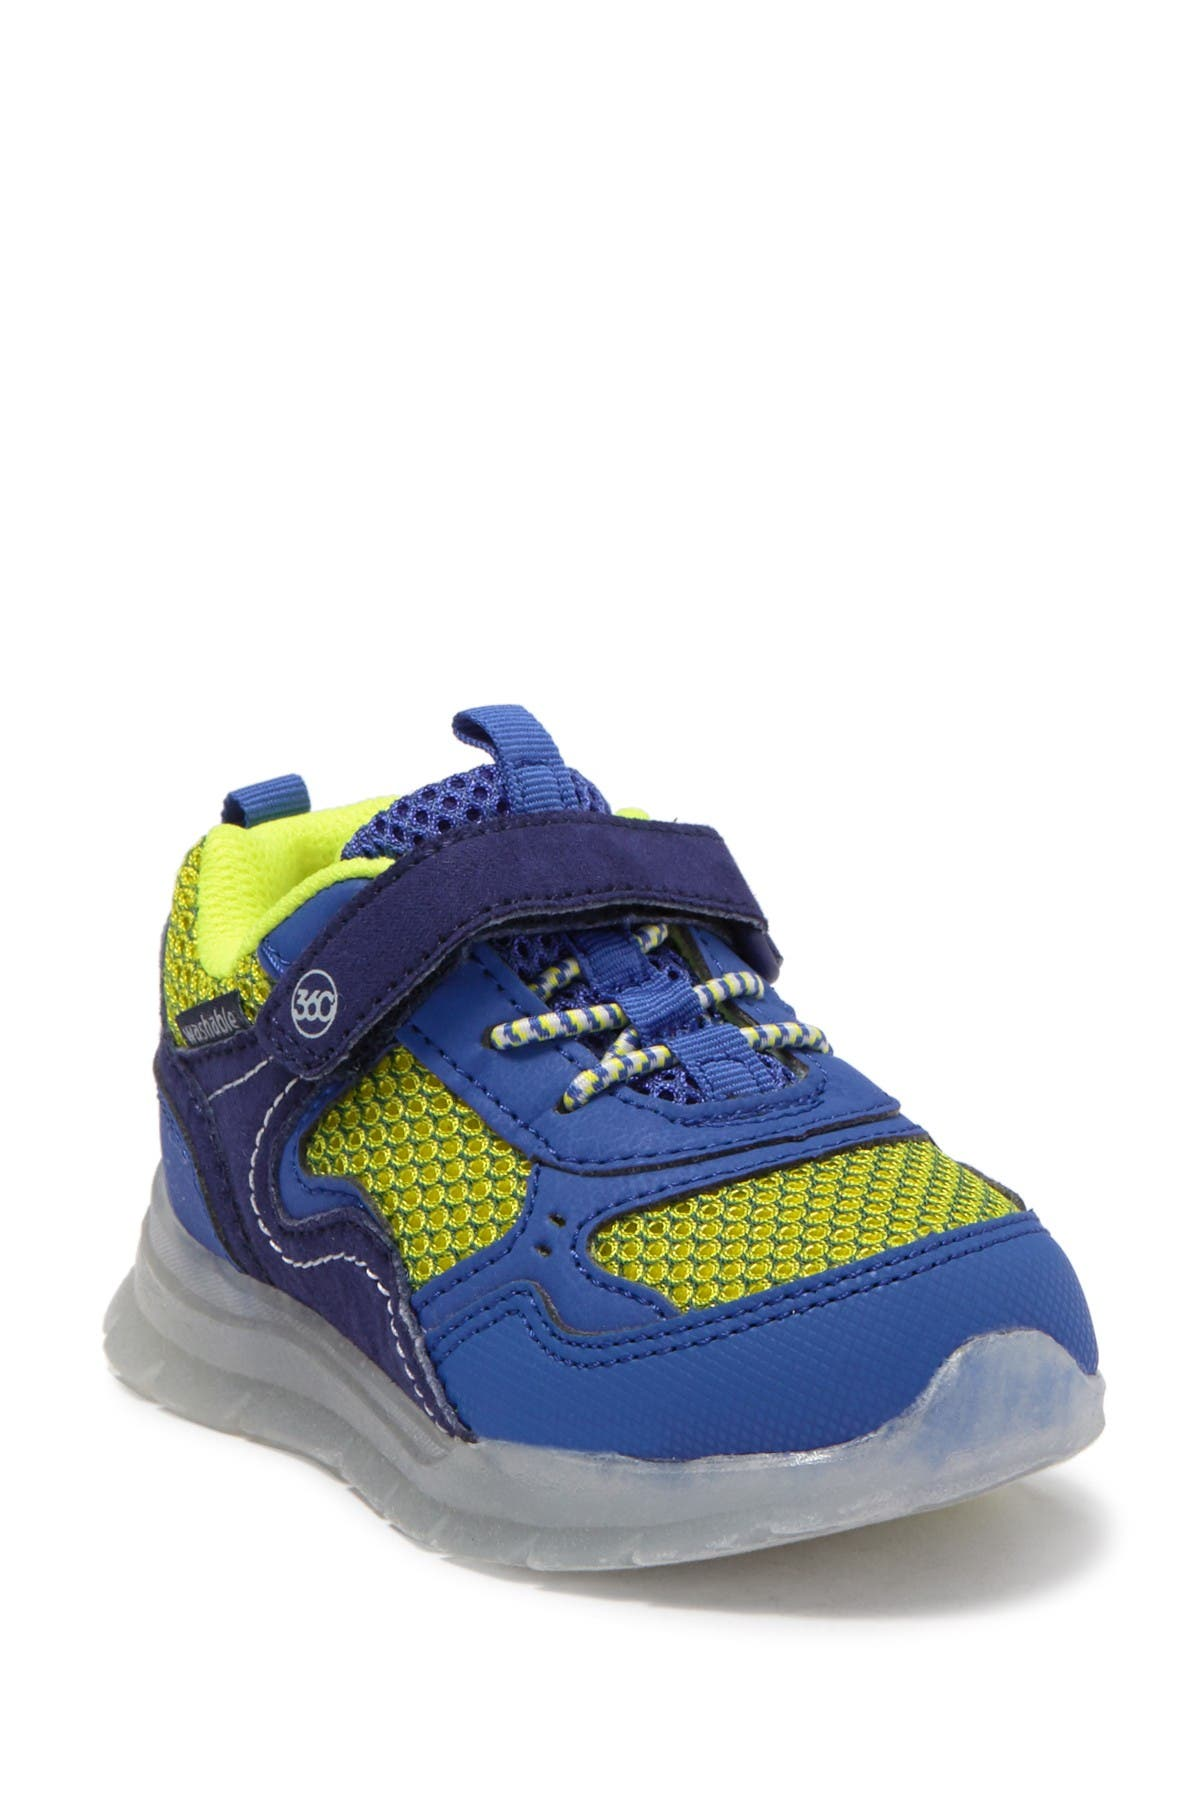 Image of Stride Rite Marcel Light-Up Sneaker